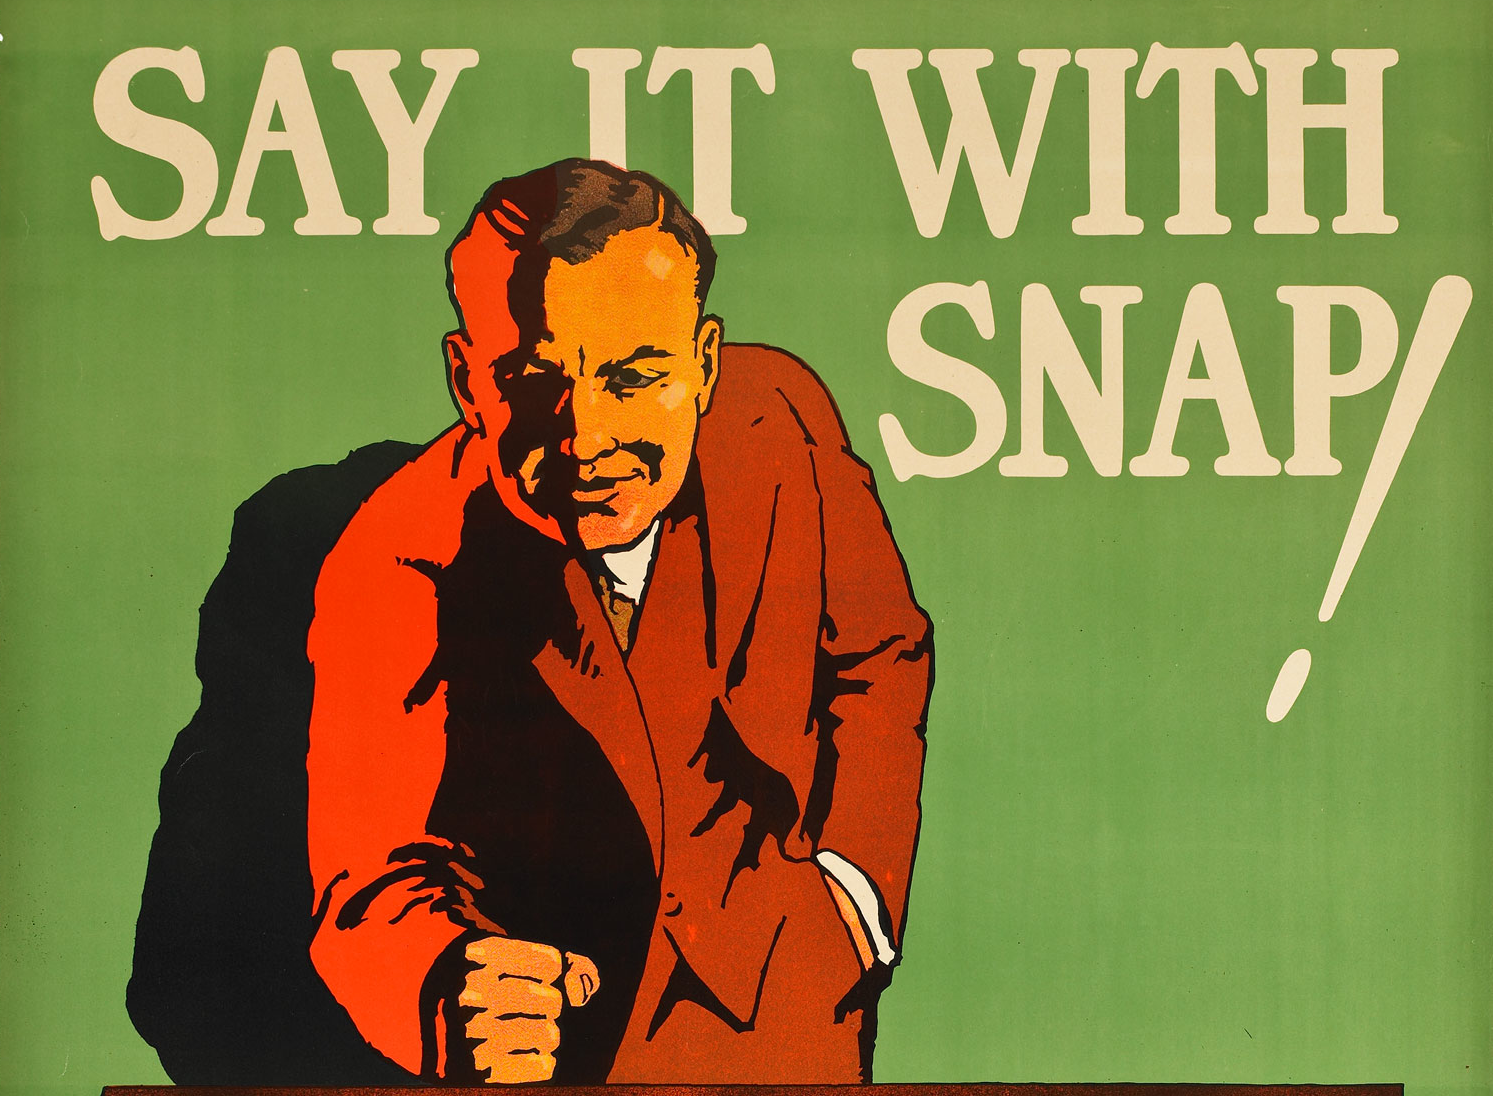 Say it with snap!